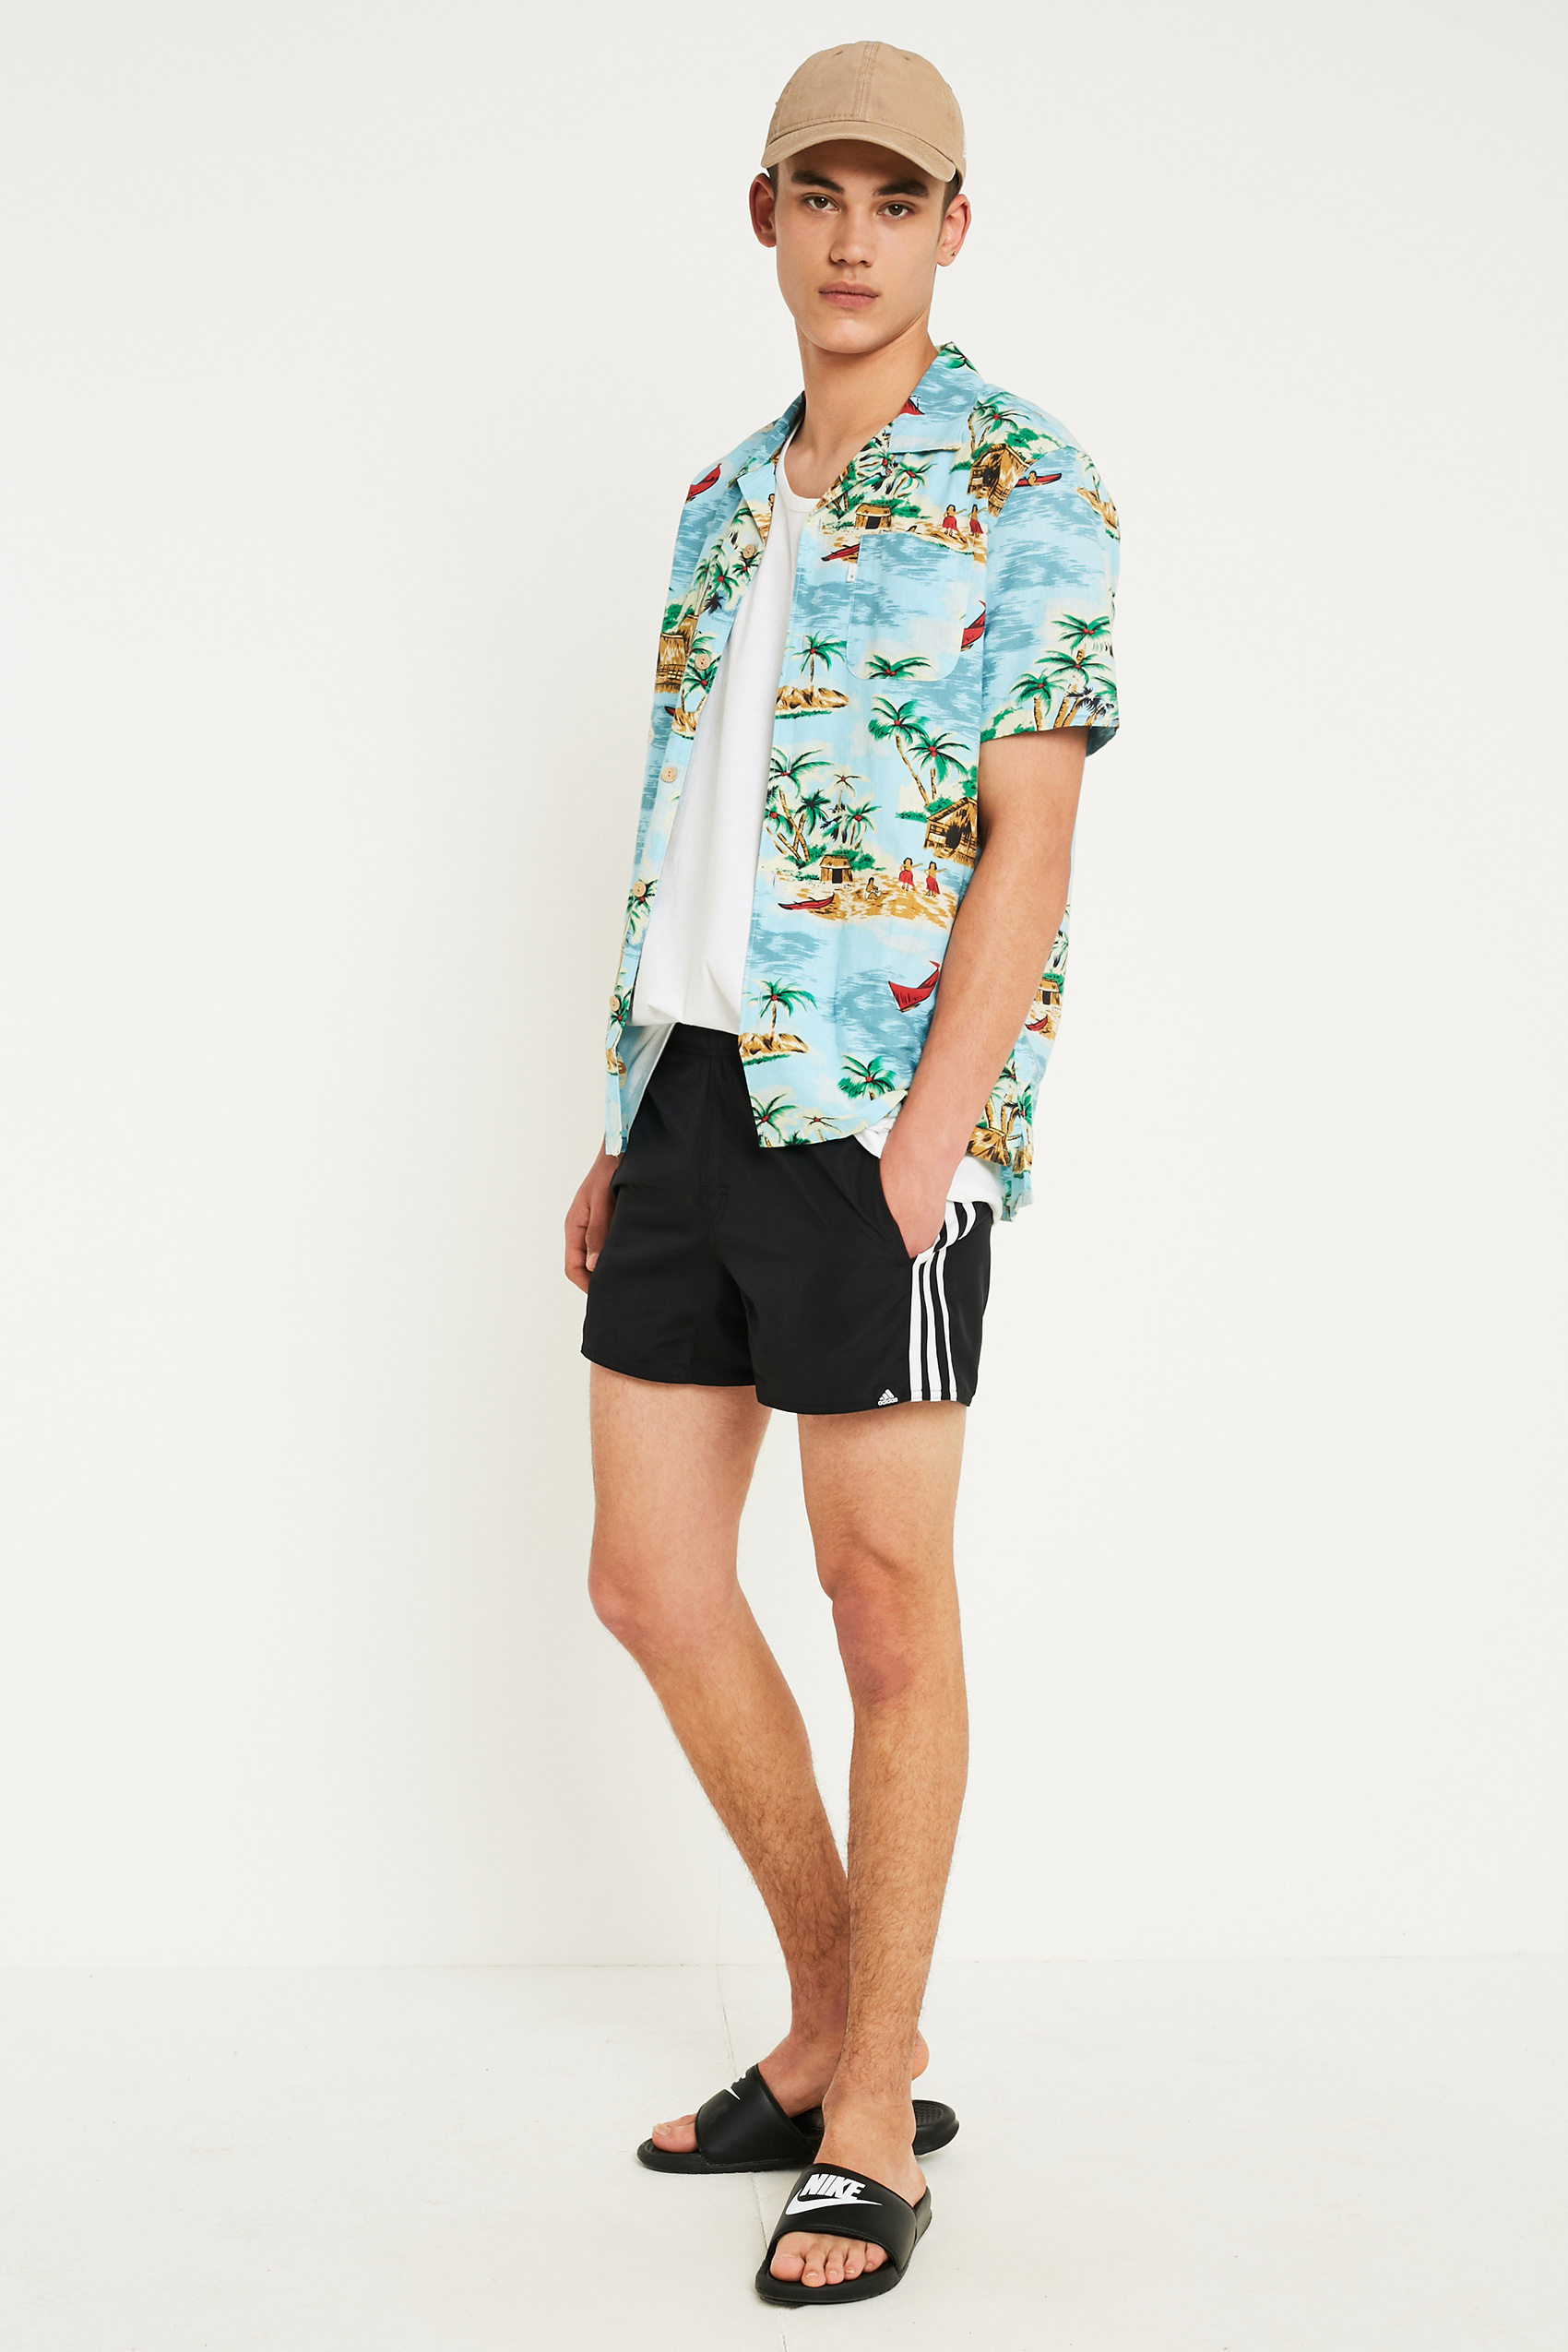 adidas swim shorts at Urban Outfitters £25 or €35.95 (2).jpg